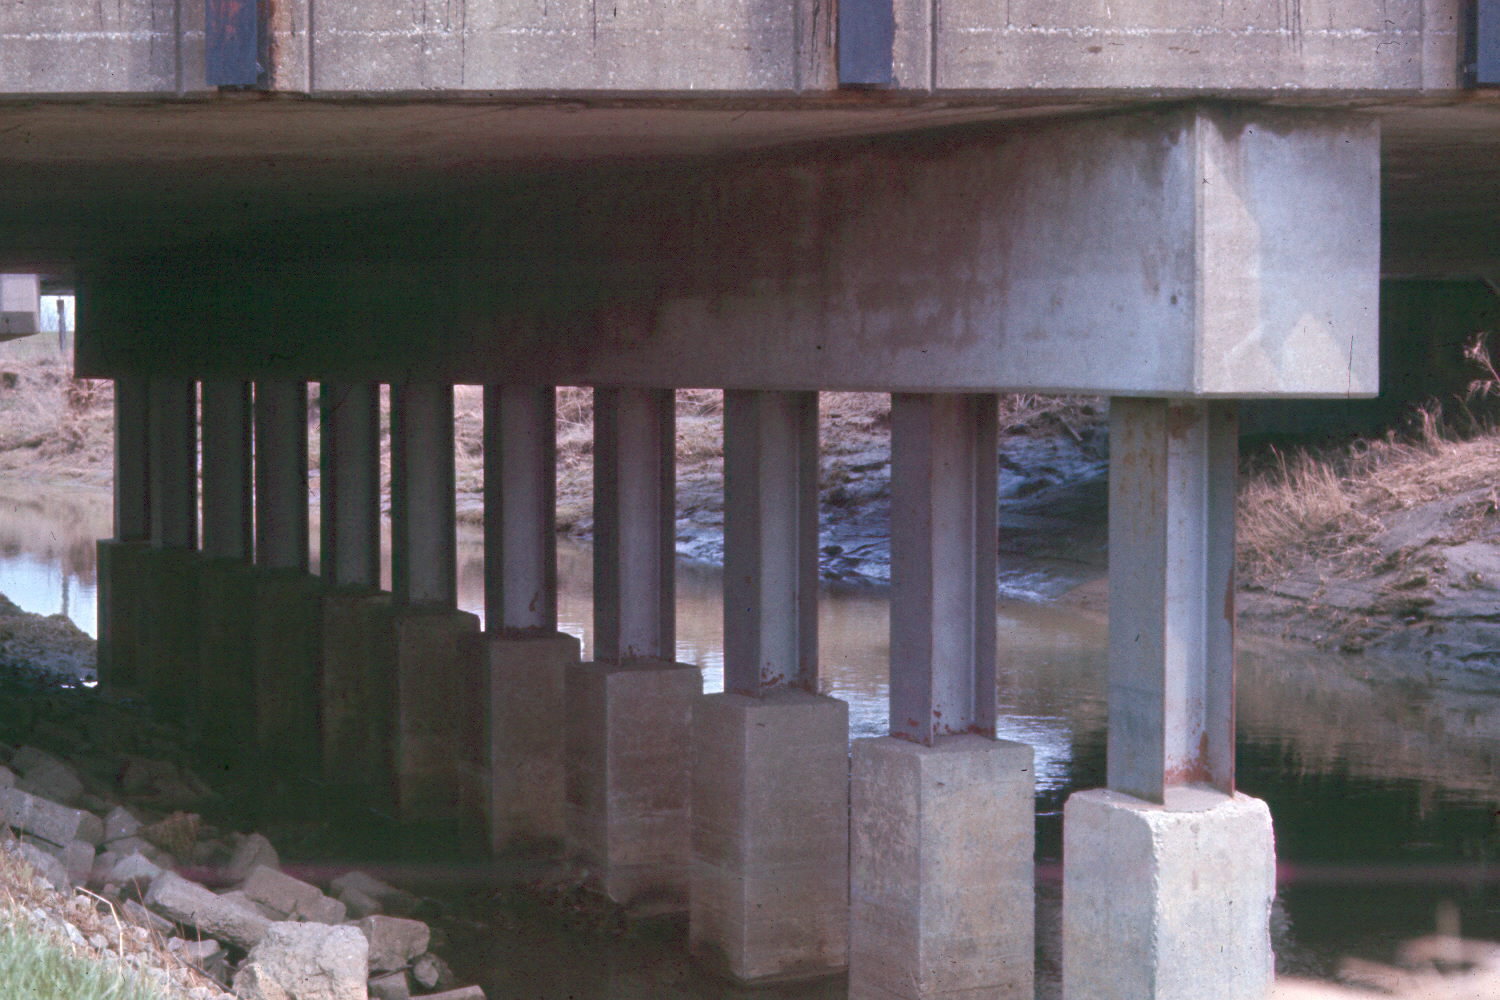 Capped Pile Type Piers Corrosion Of Steel Piling At Water